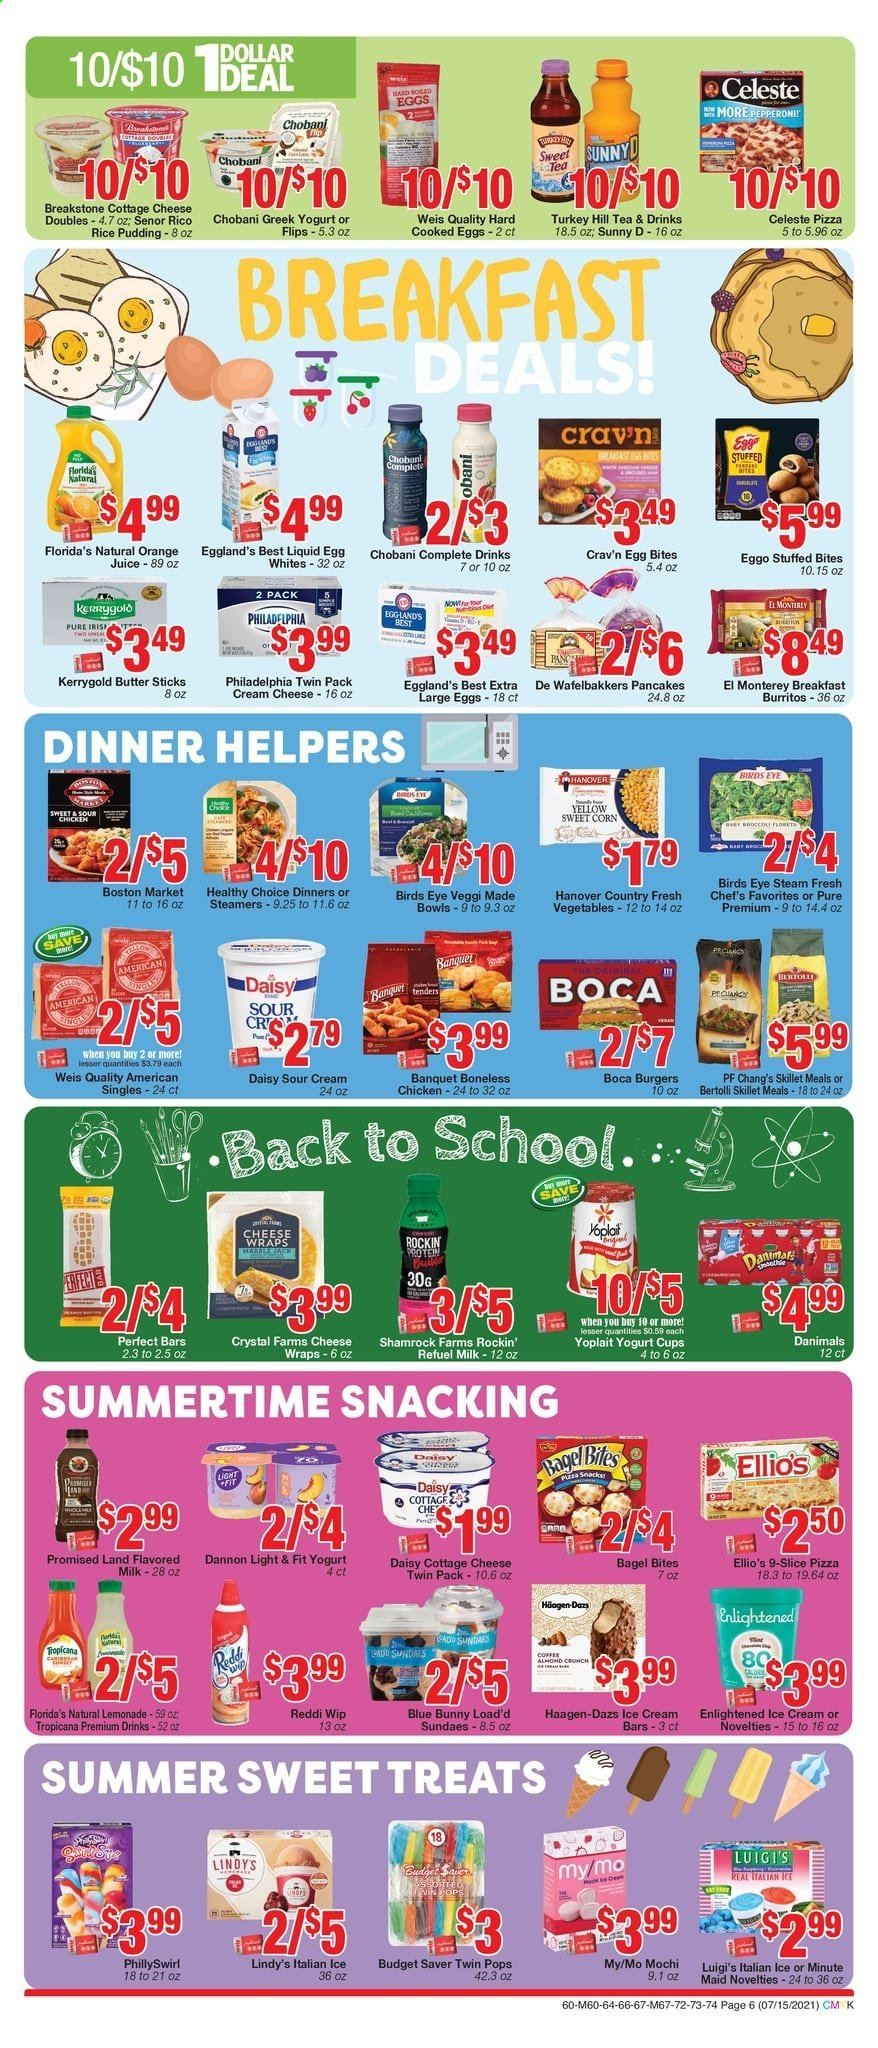 Weis Markets Ad from july 15 to august 19 2021 - Page 6